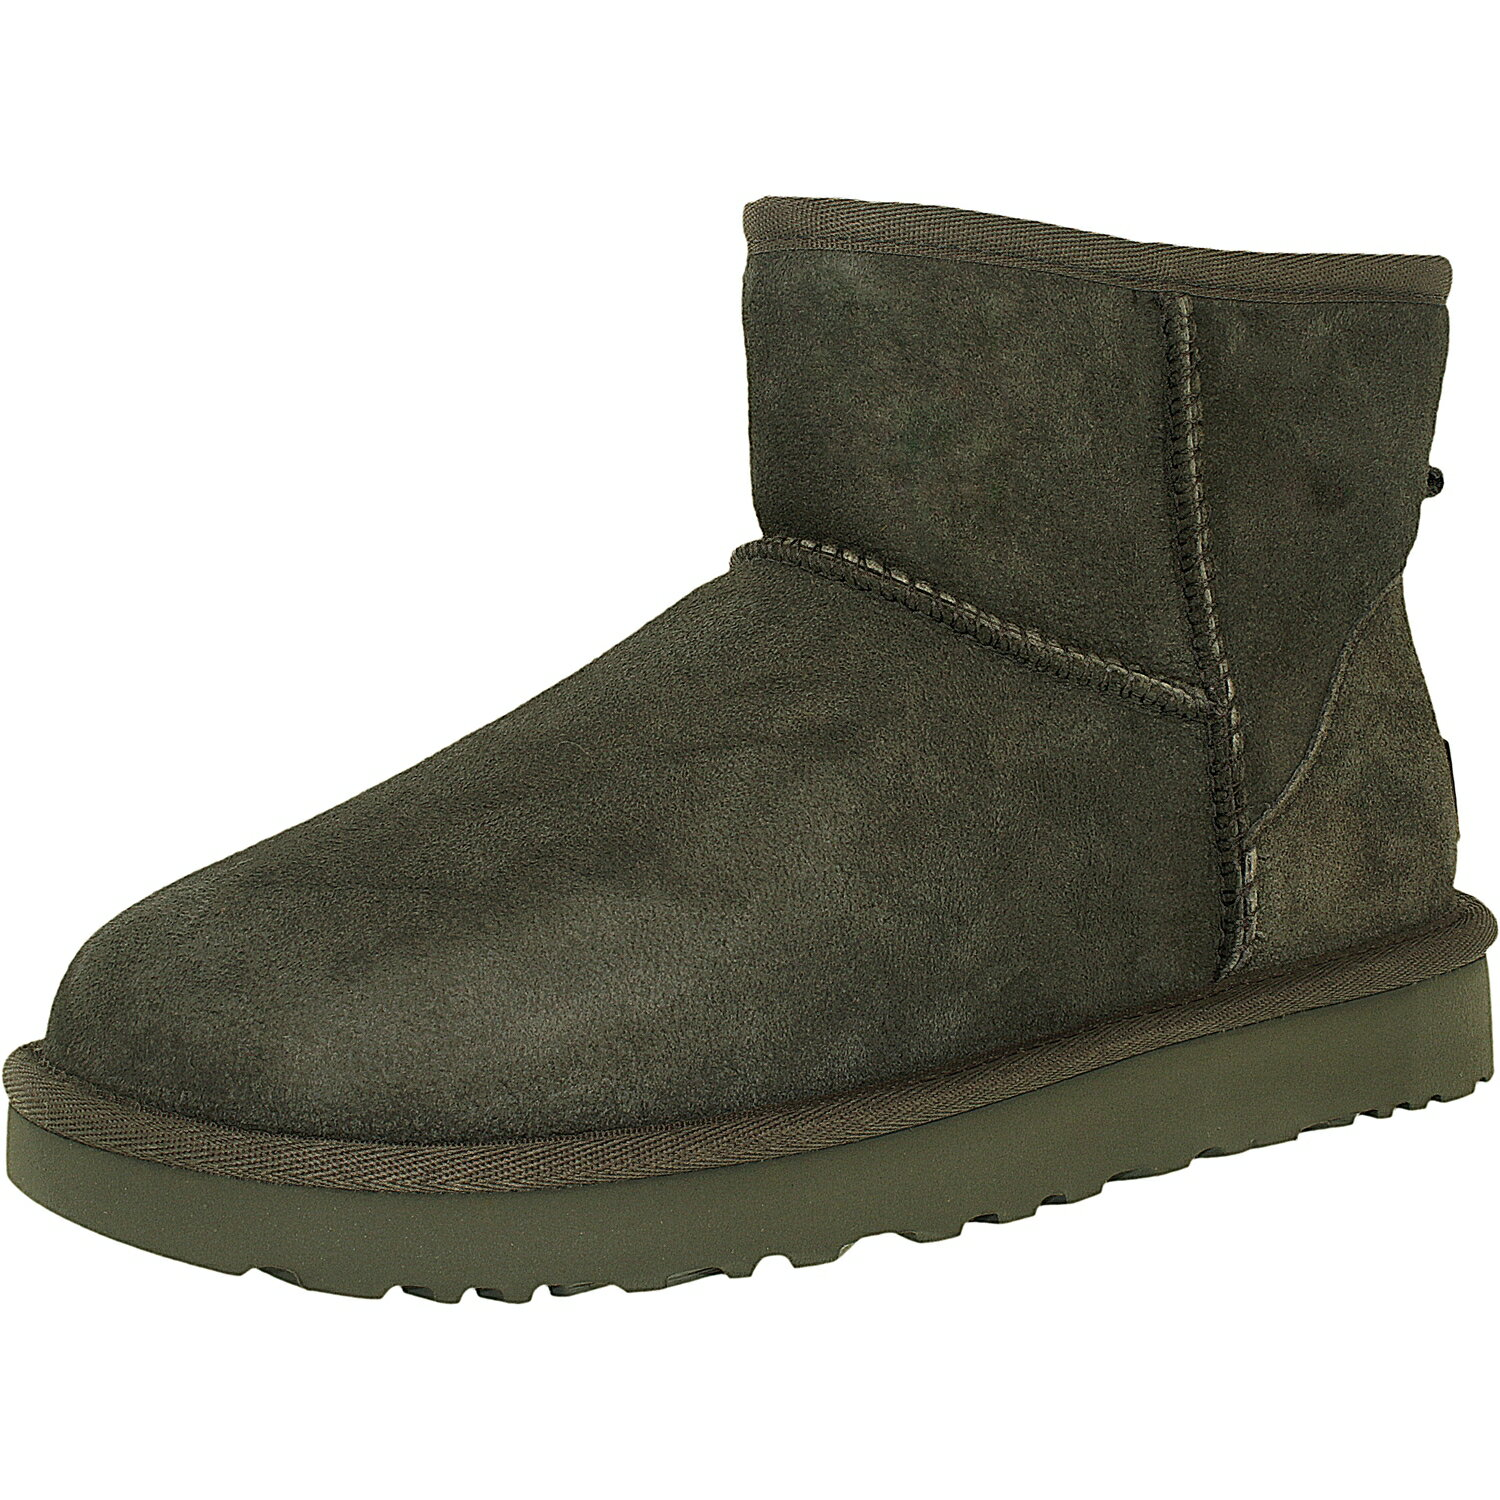 Ugg Women's Classic Mini II Leather Ankle-High Suede Boot 0